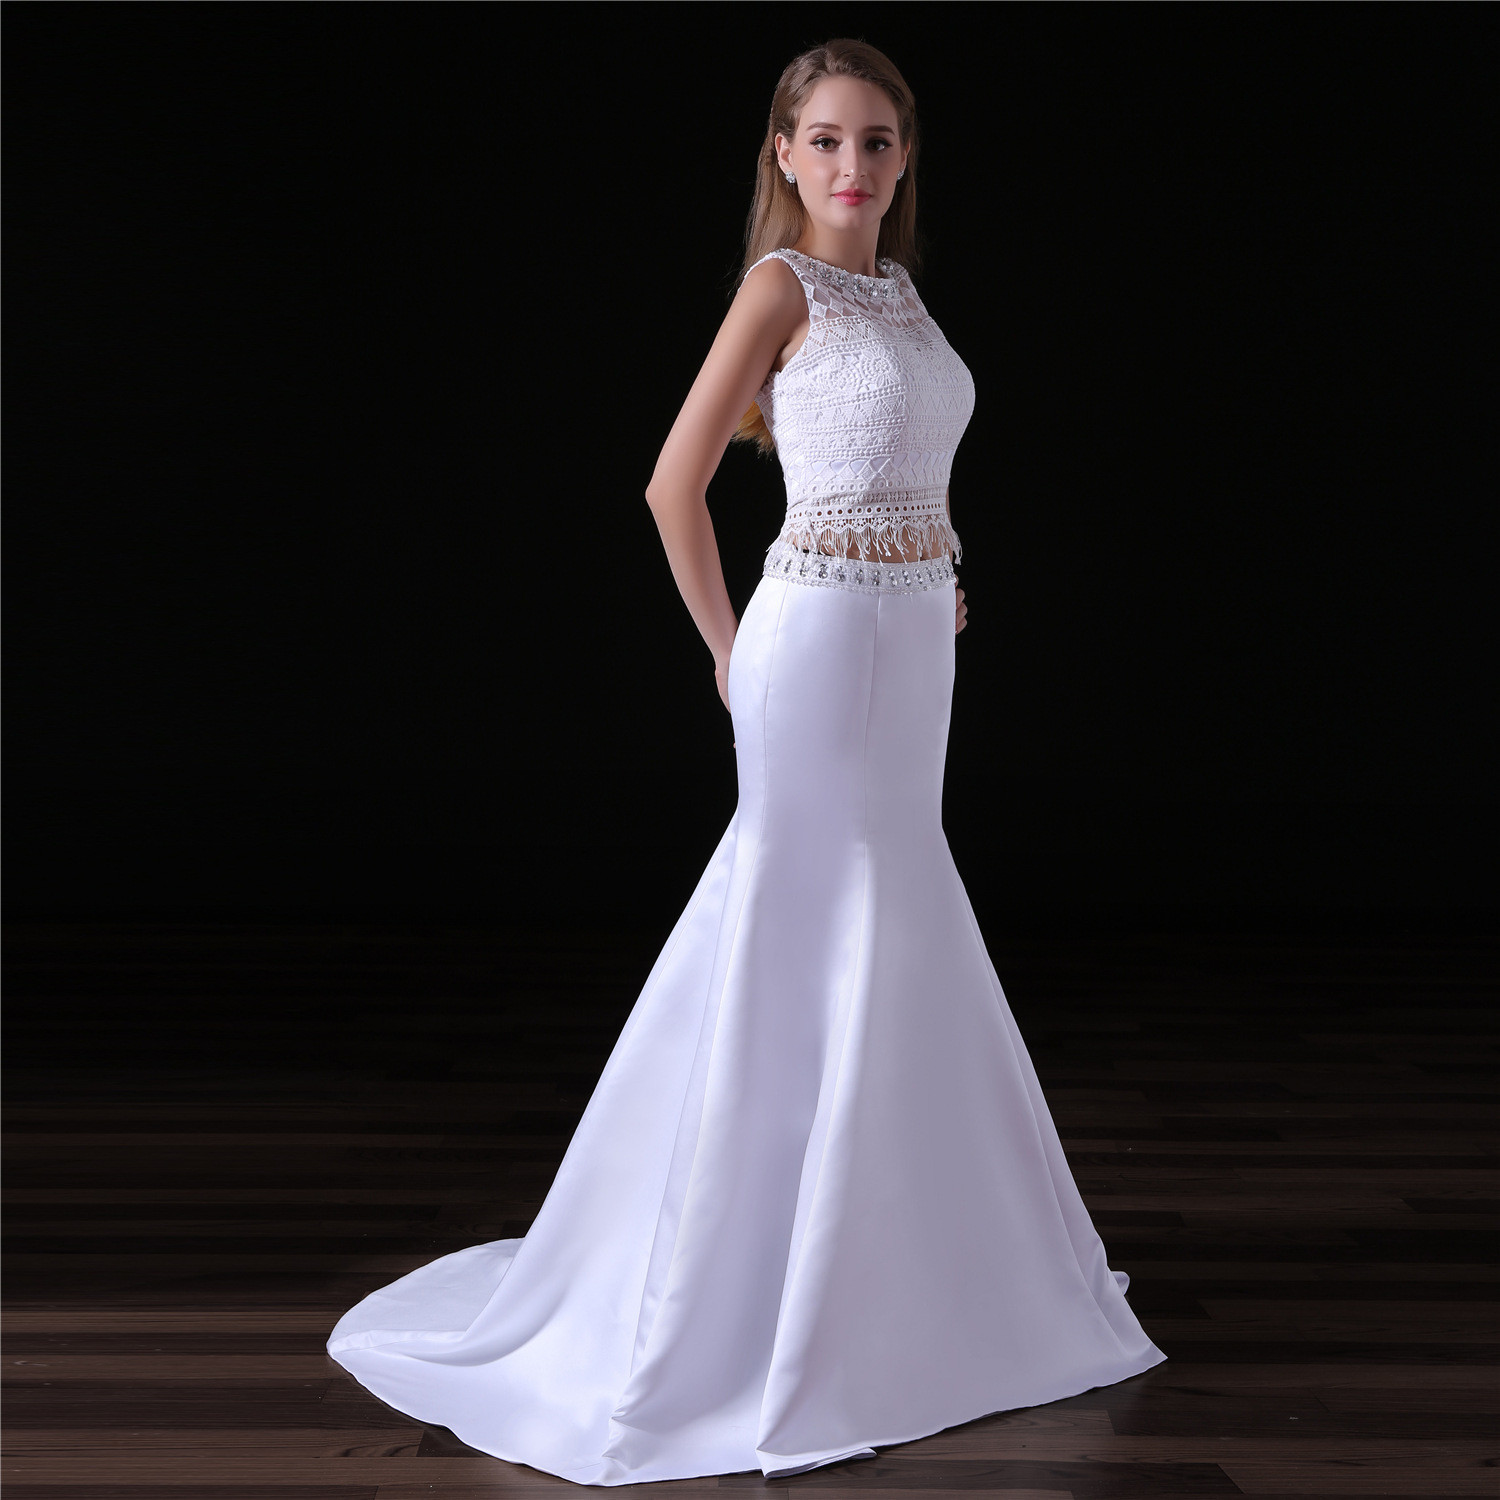 White Two Piece Prom Dress Formal Evening Dress Wholesale